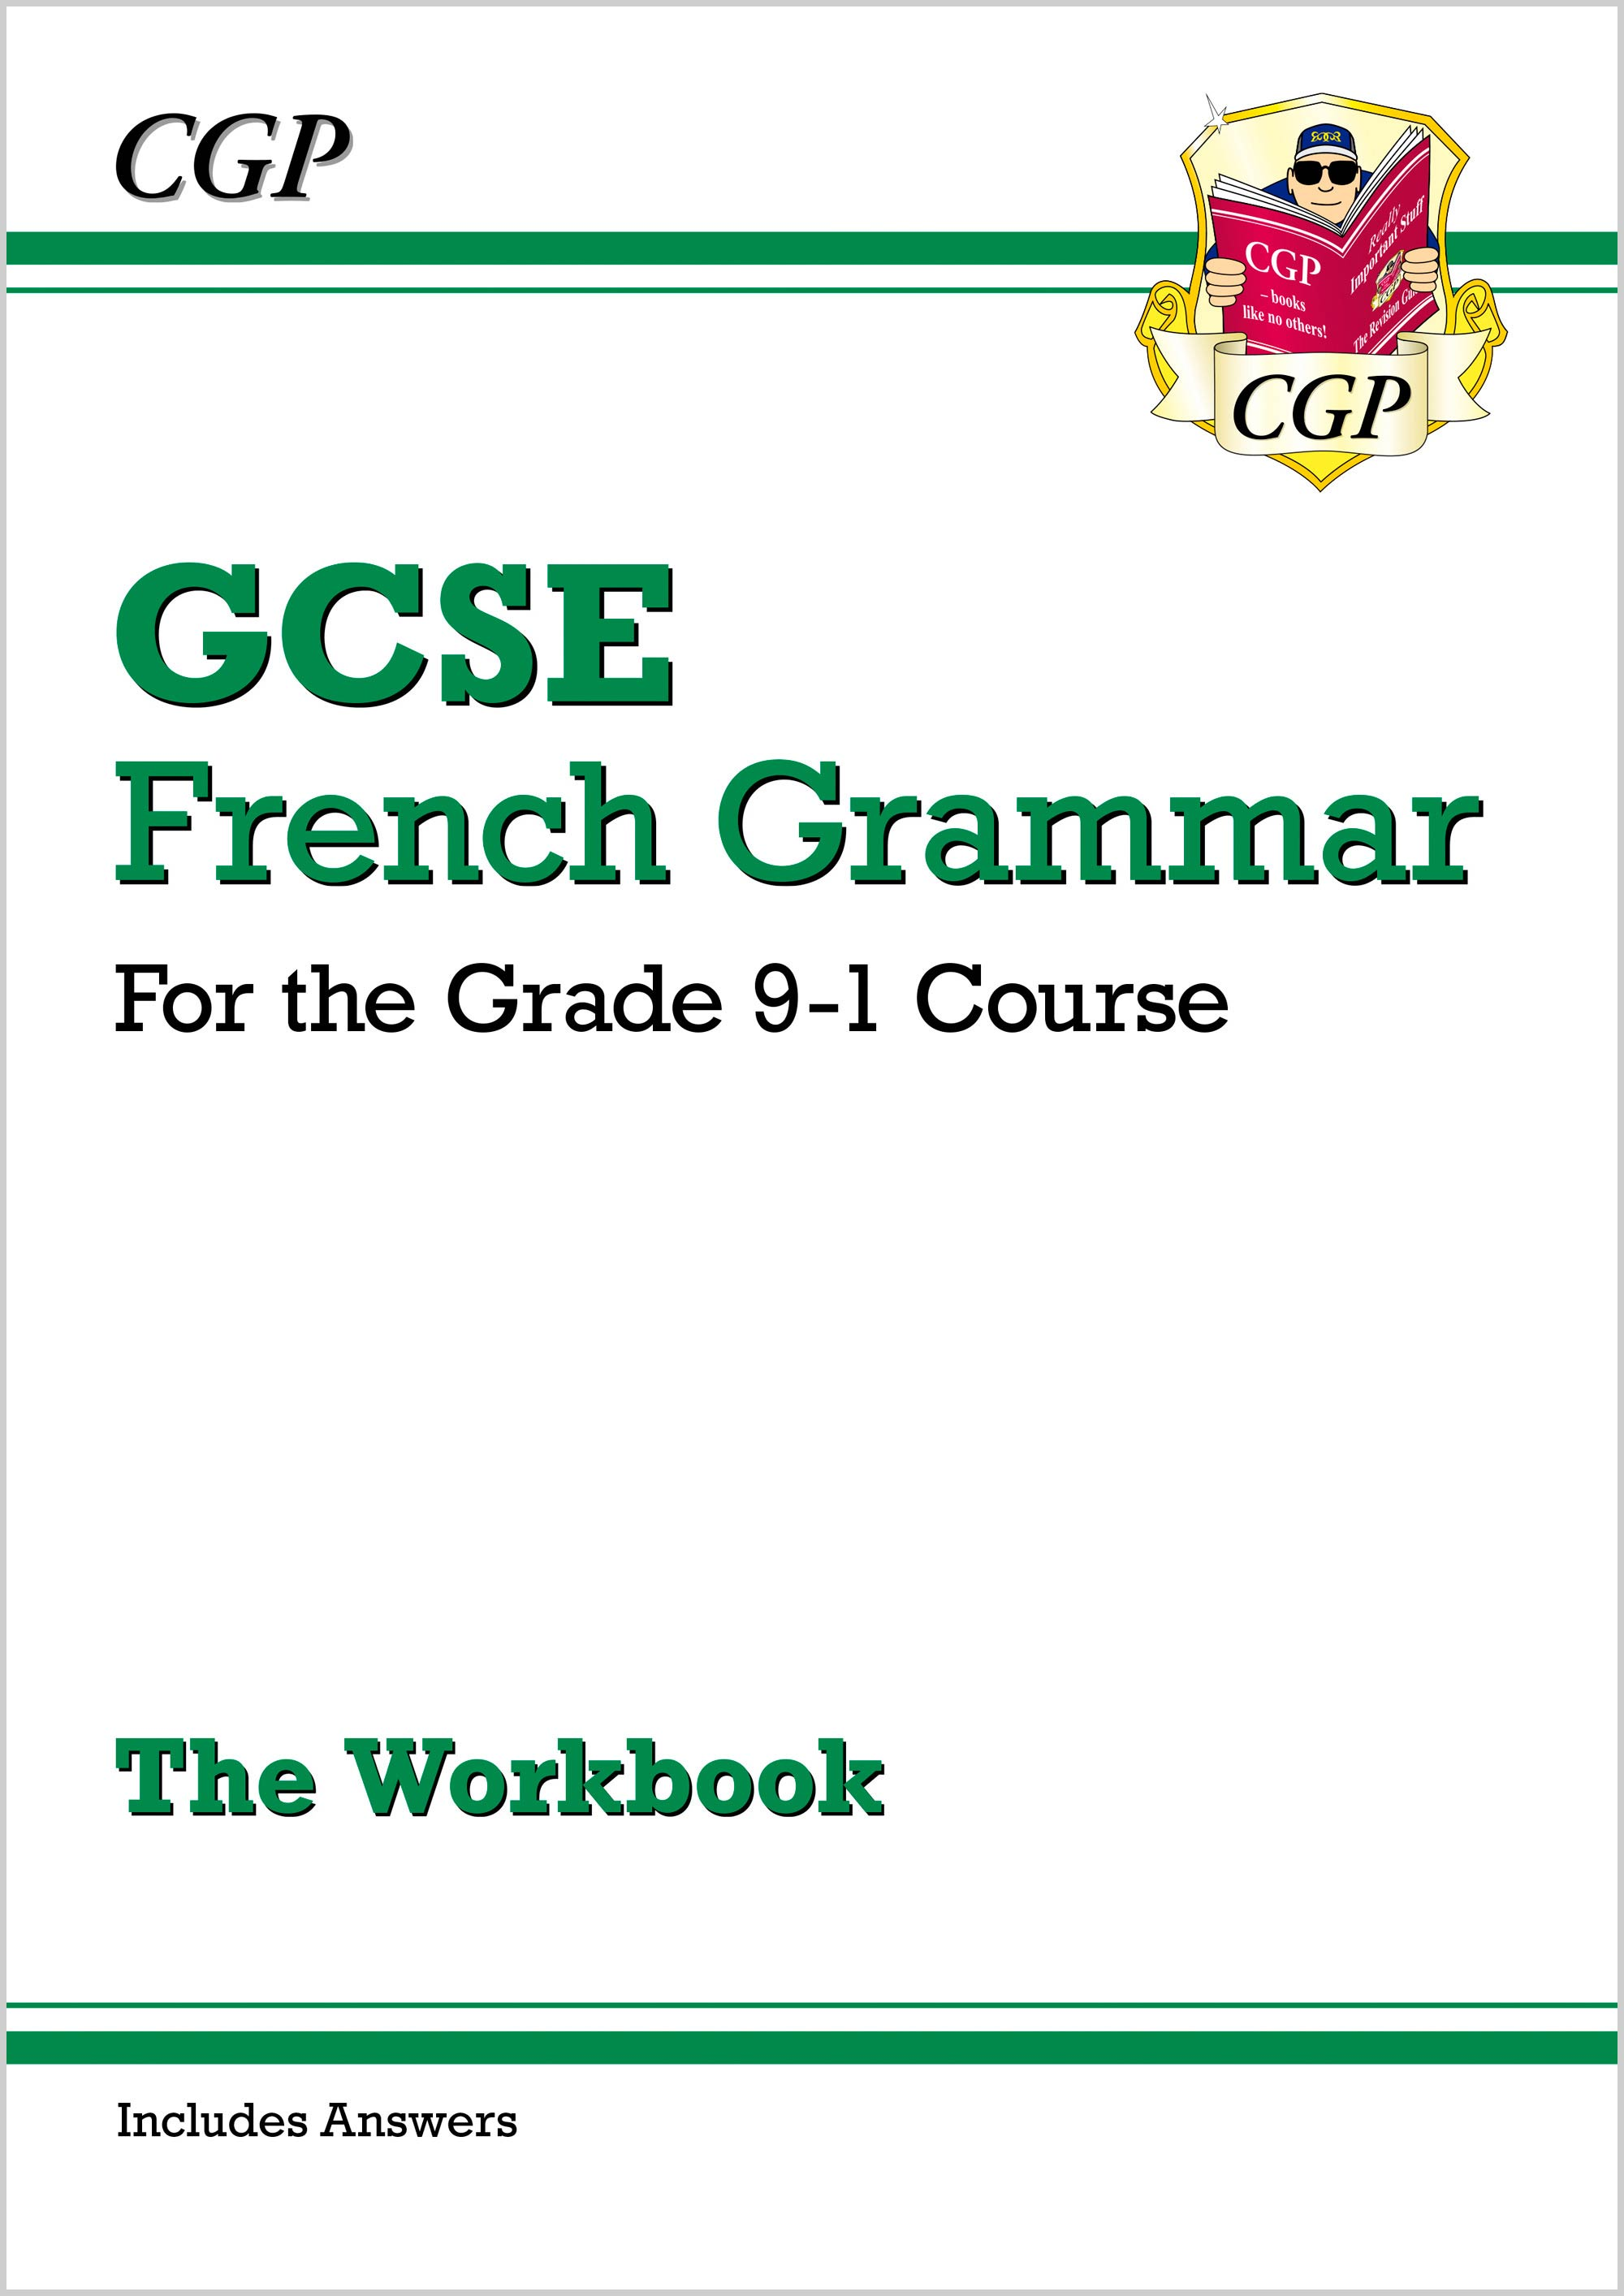 FGW41DK - New GCSE French Grammar Workbook - for the Grade 9-1 Course (includes Answers)